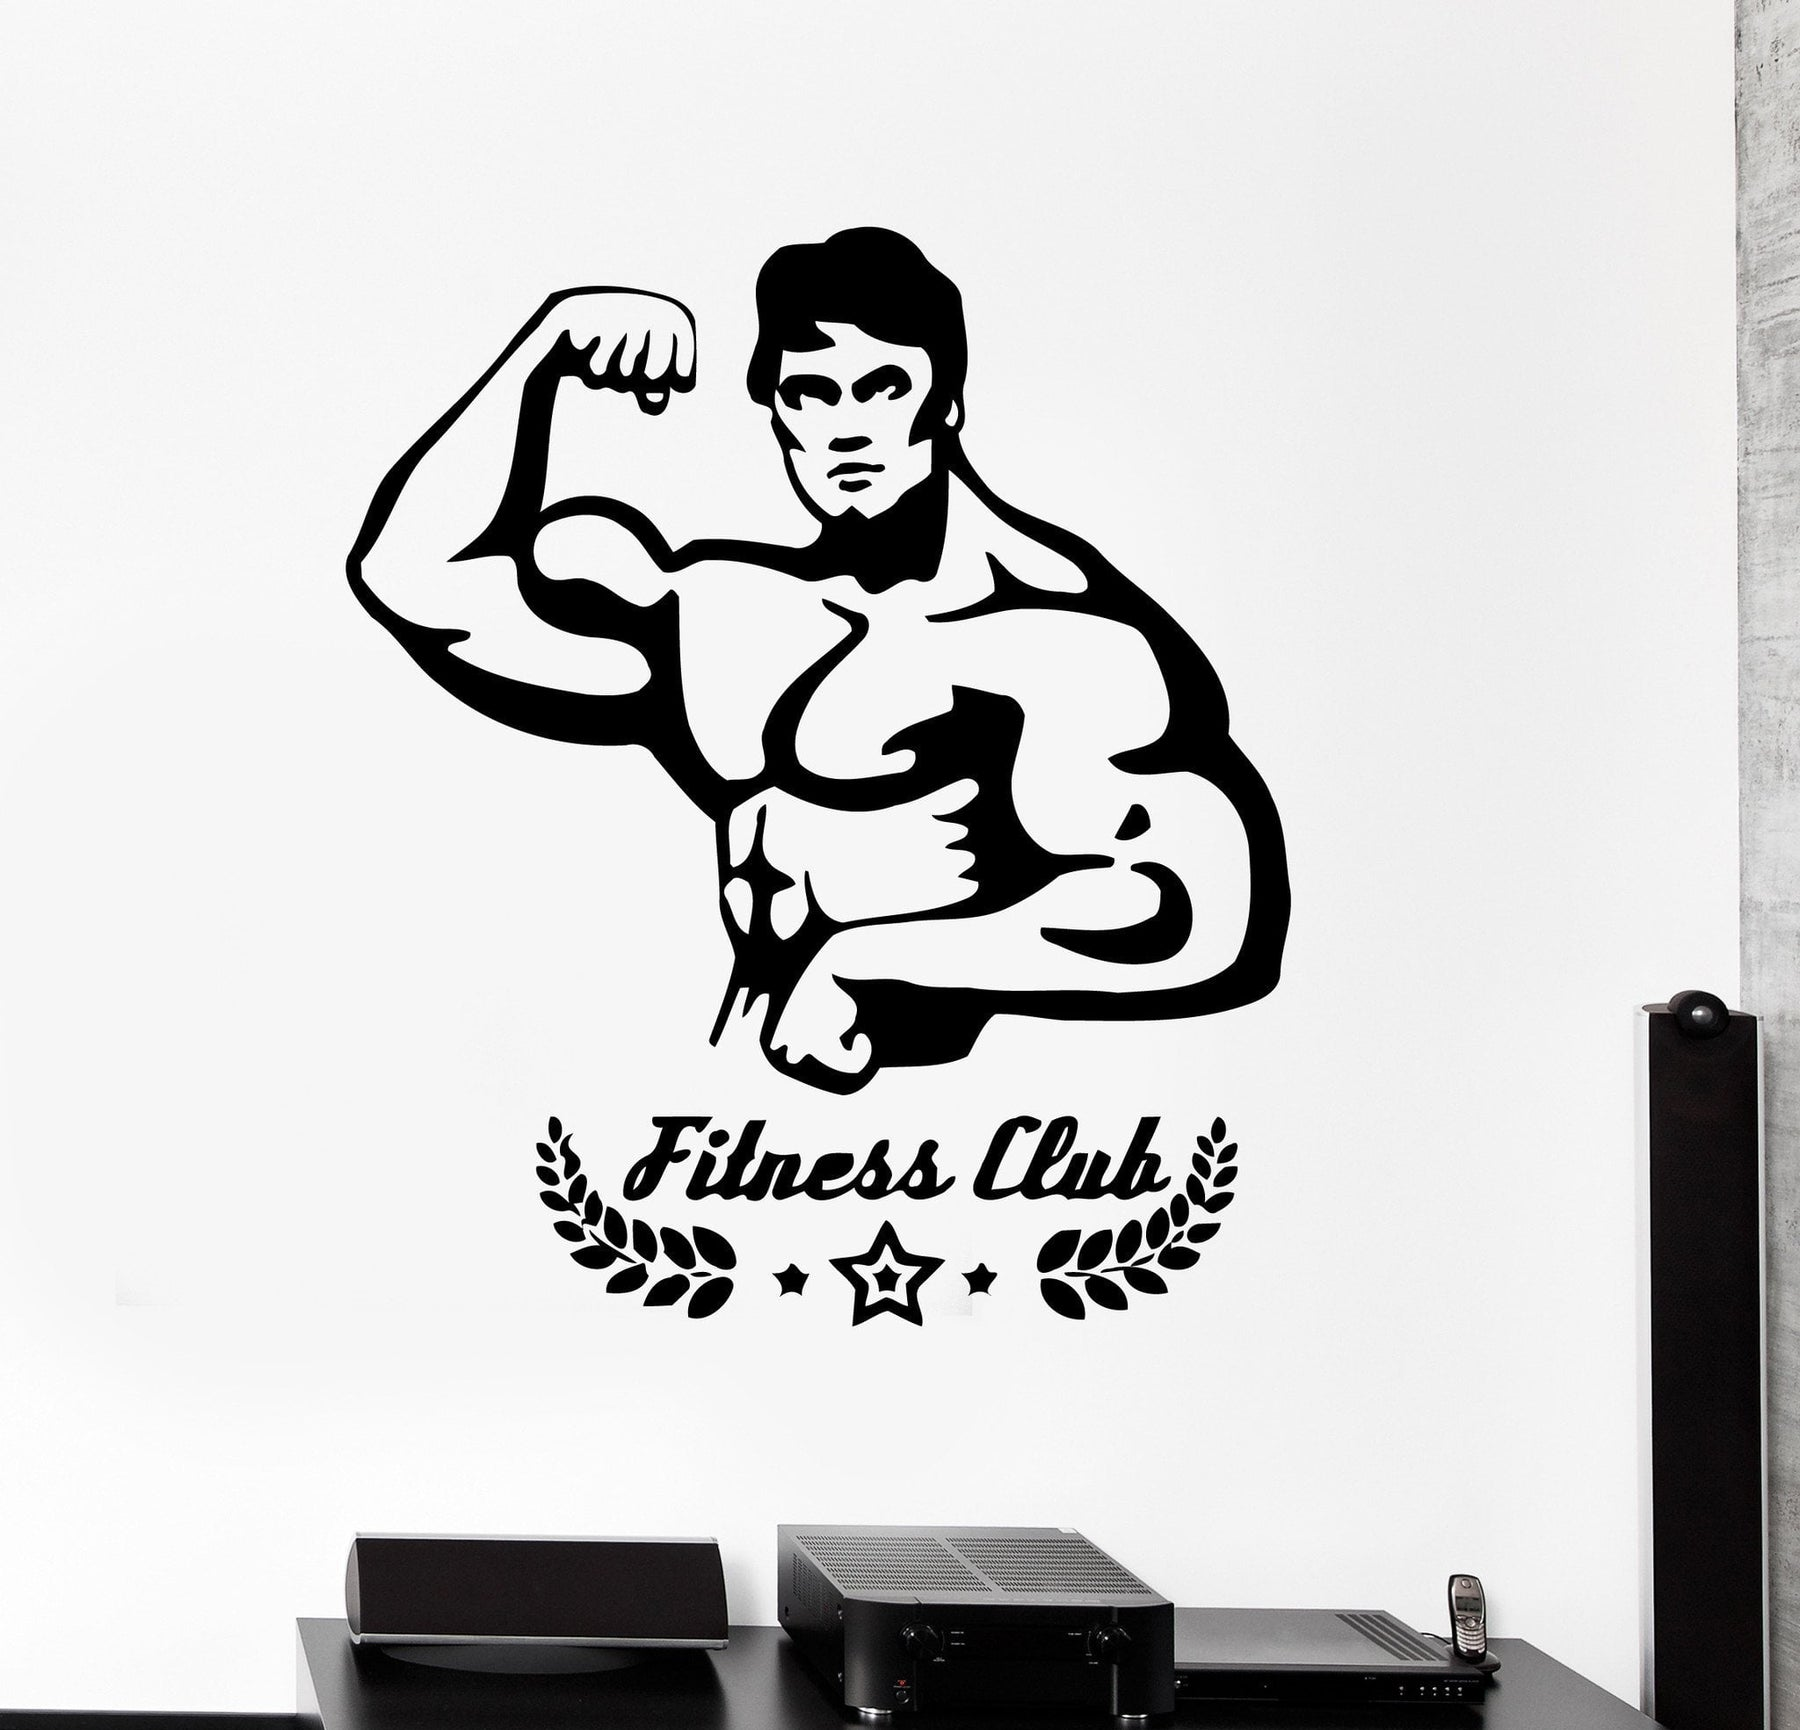 Wall Stickers Vinyl Decal Fitness Club Gym Muscled Bodybuilder Unique Gift (ig330)